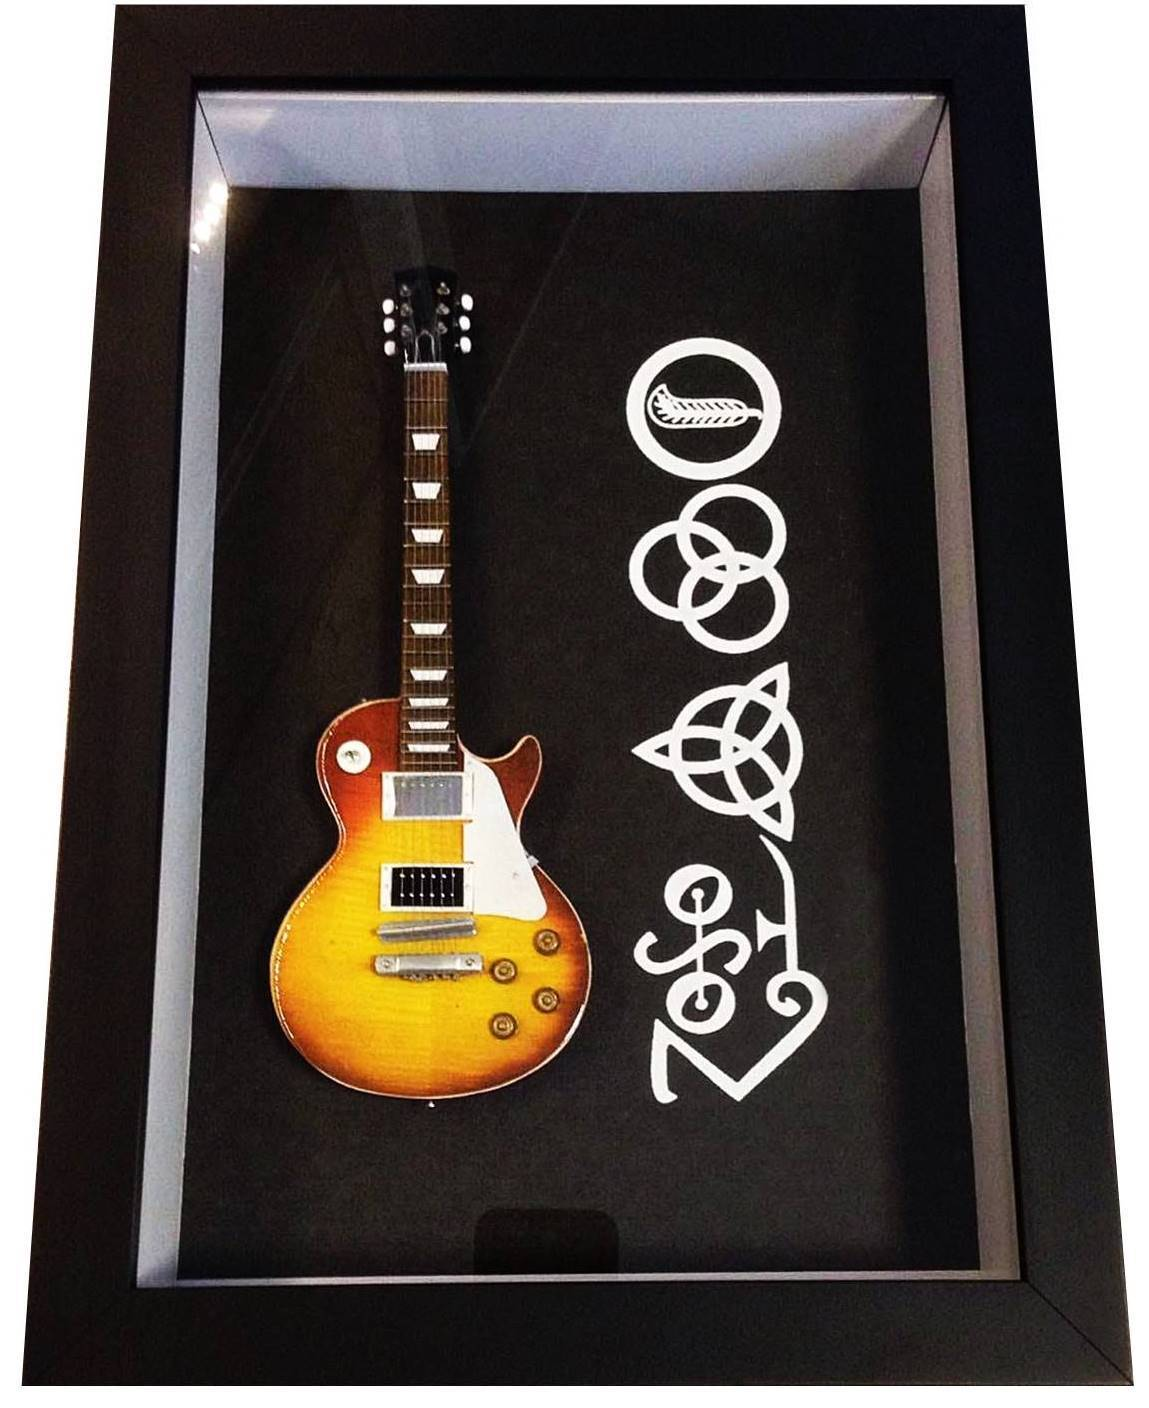 MiniLuthieria - Led Zeppelin – Quadro Logo com Mini Guitarra